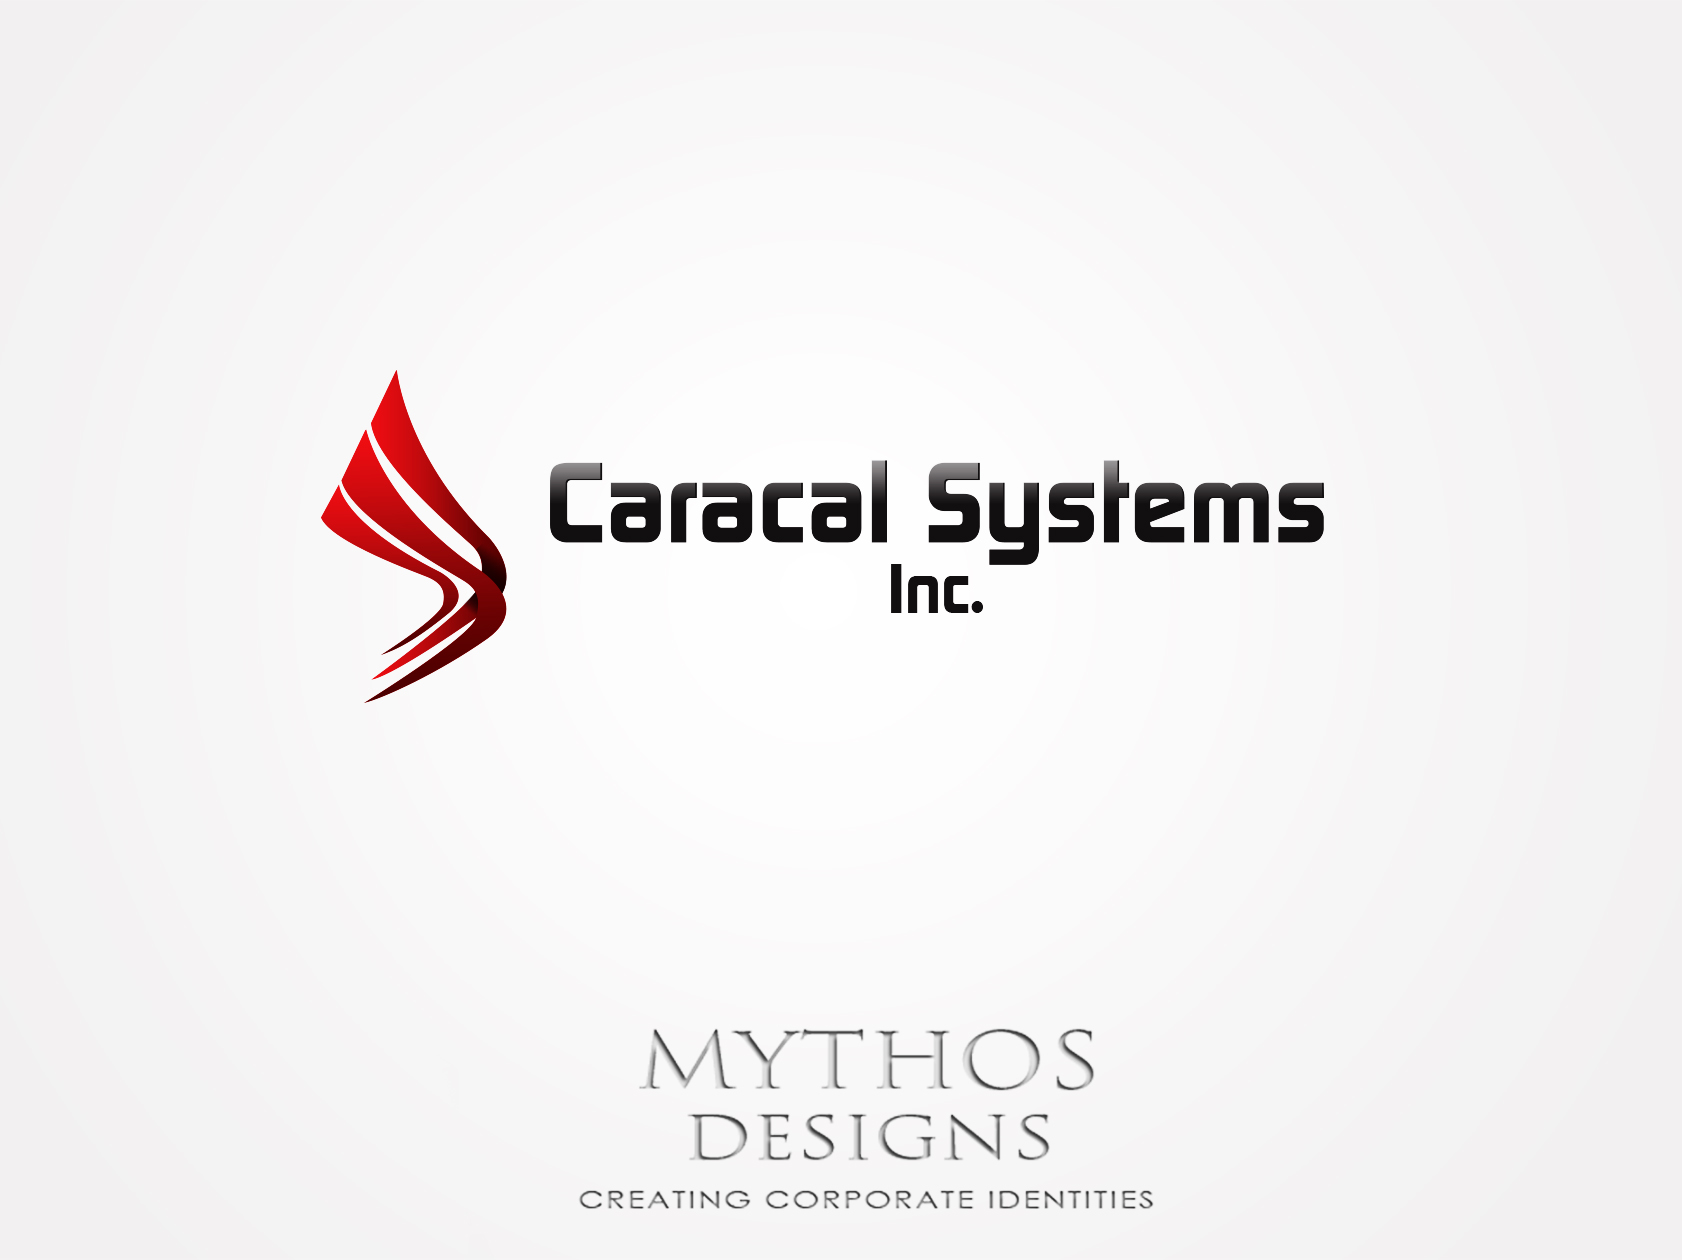 Logo Design by Mythos Designs - Entry No. 106 in the Logo Design Contest Inspiring Logo Design for Caracal Systems Inc..